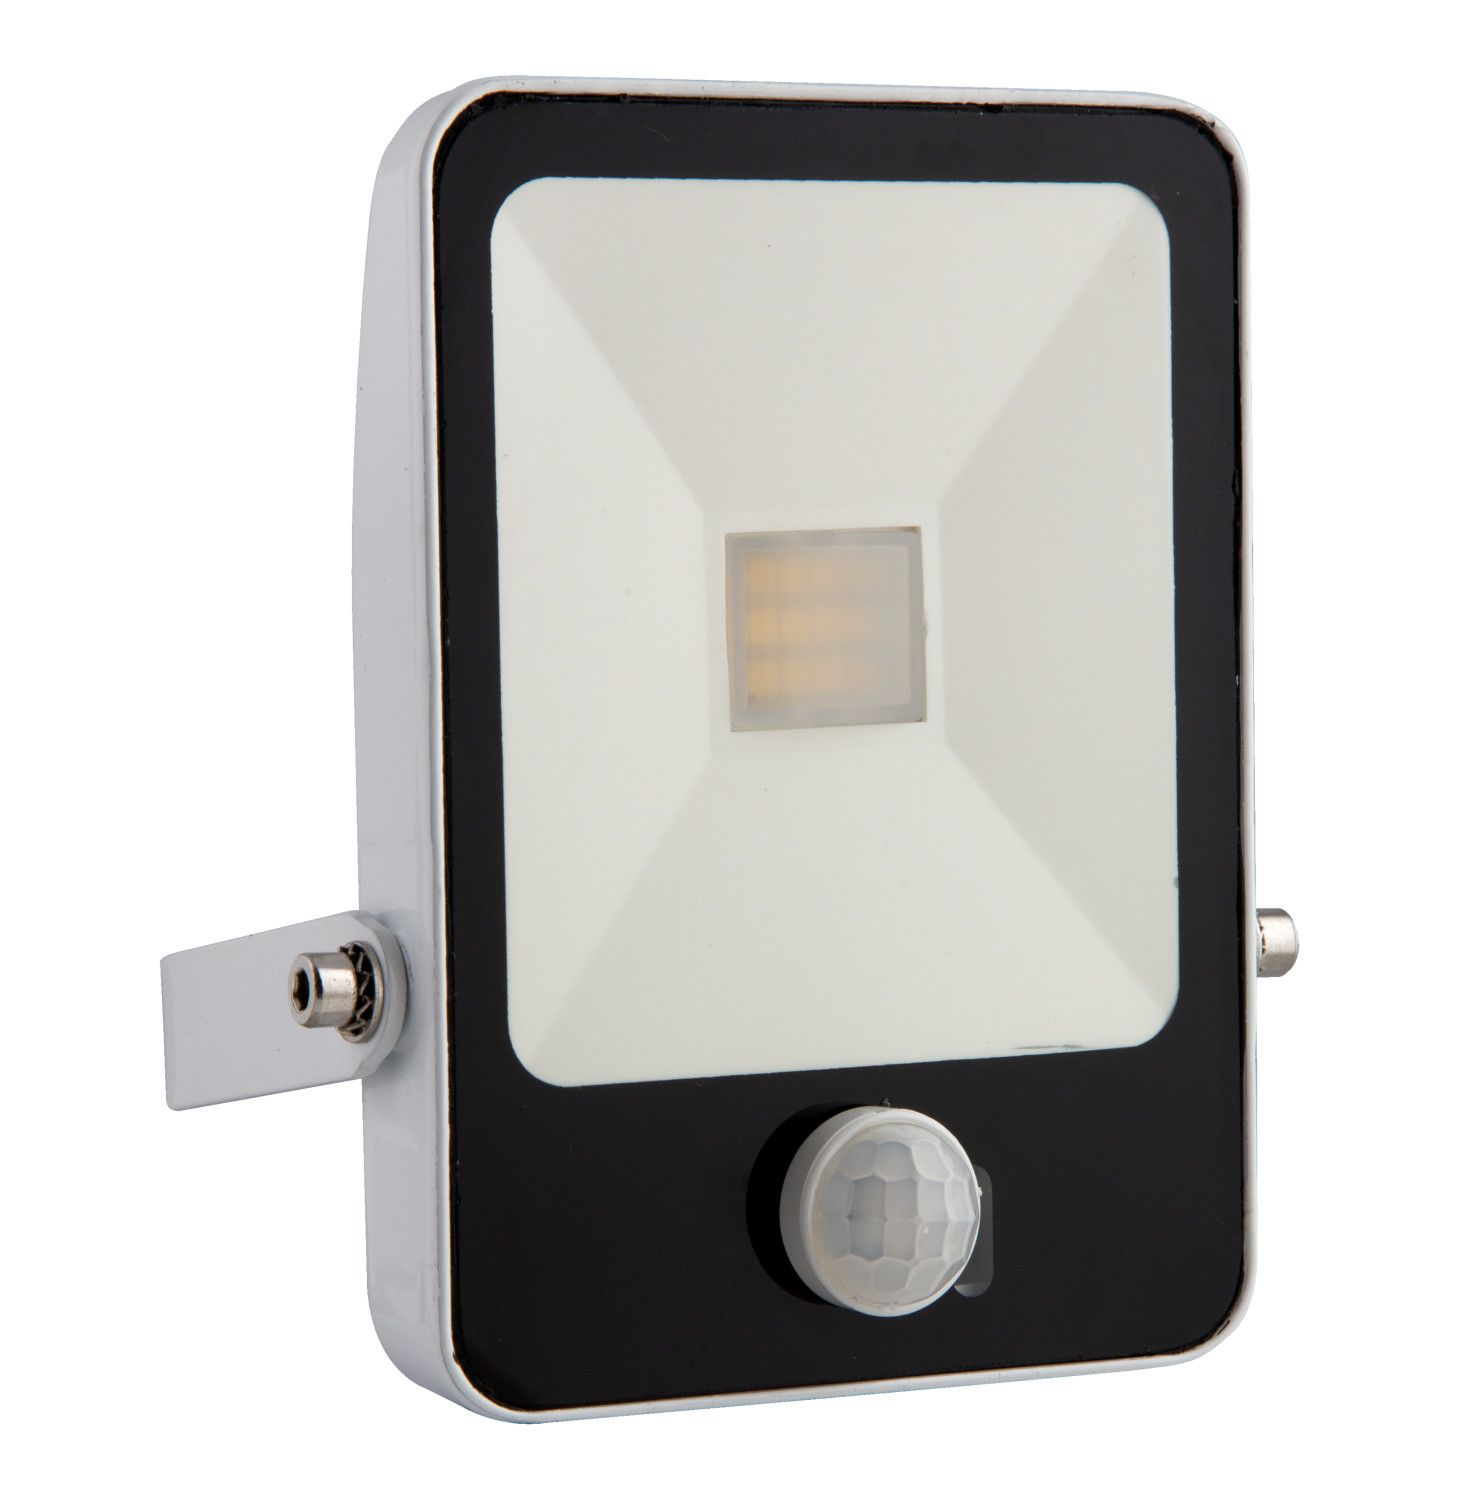 Led Lighting Prices Eurolux Led Floodlight With Sensor Lowest Prices Specials